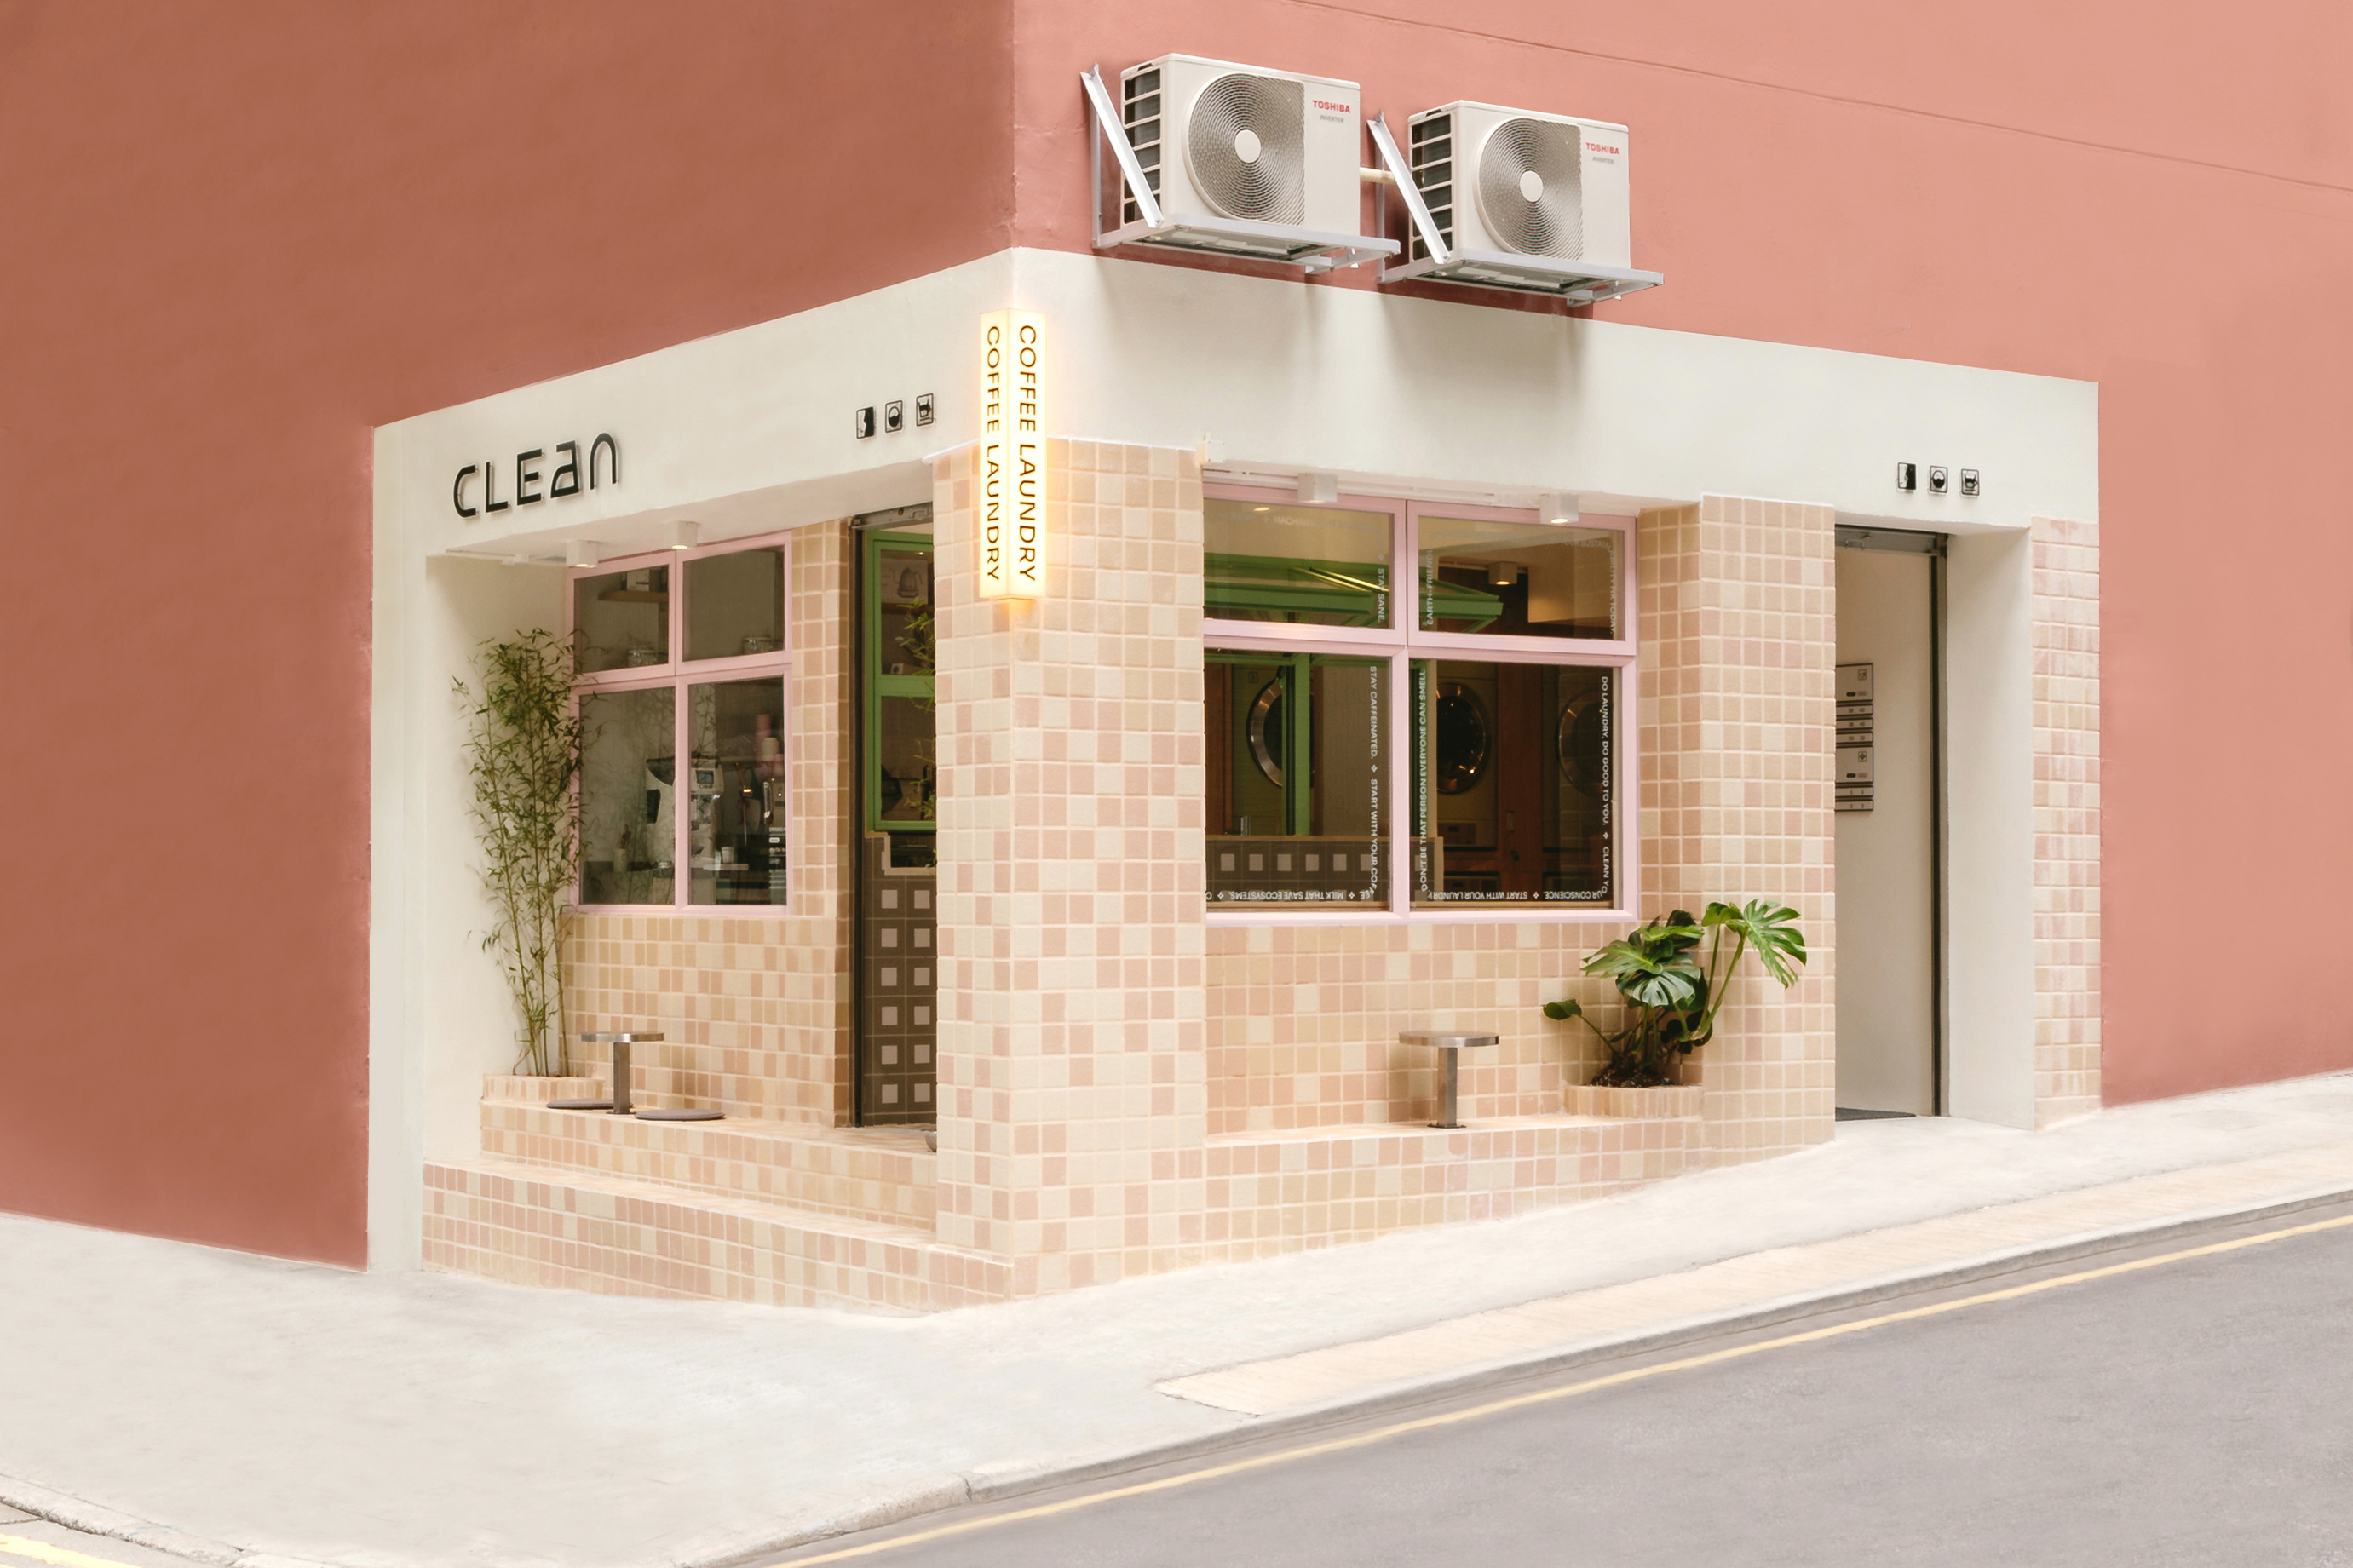 New sustainable cafe and laundromat opens in Sheung Wan